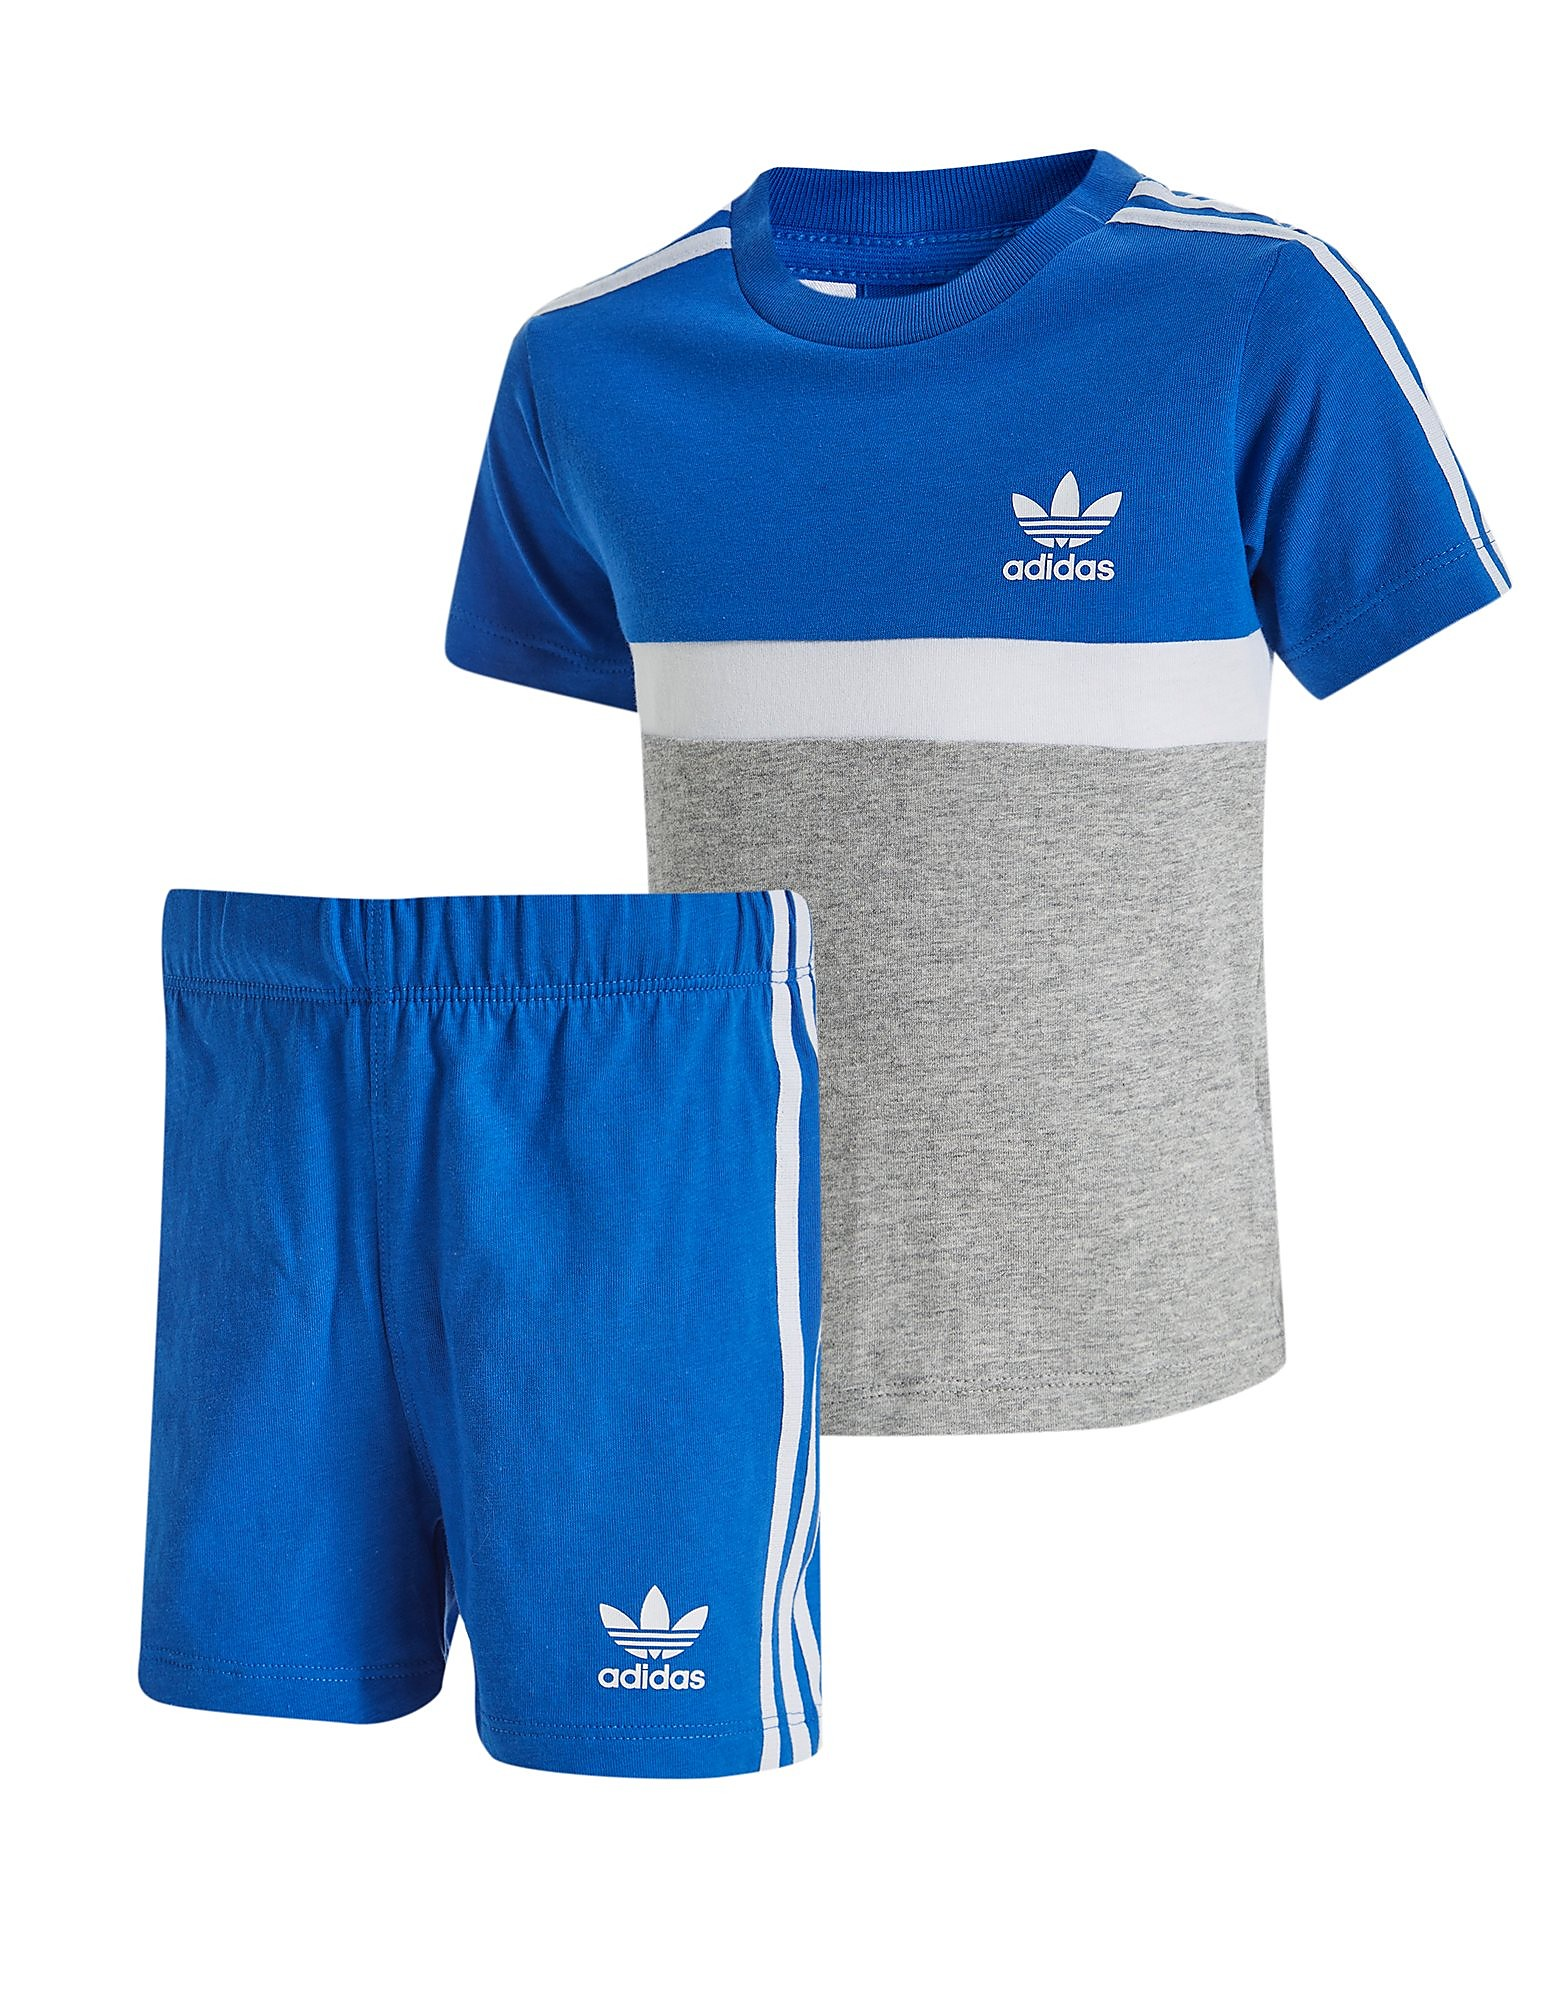 adidas Originals Itasca T-Shirt/Short Set